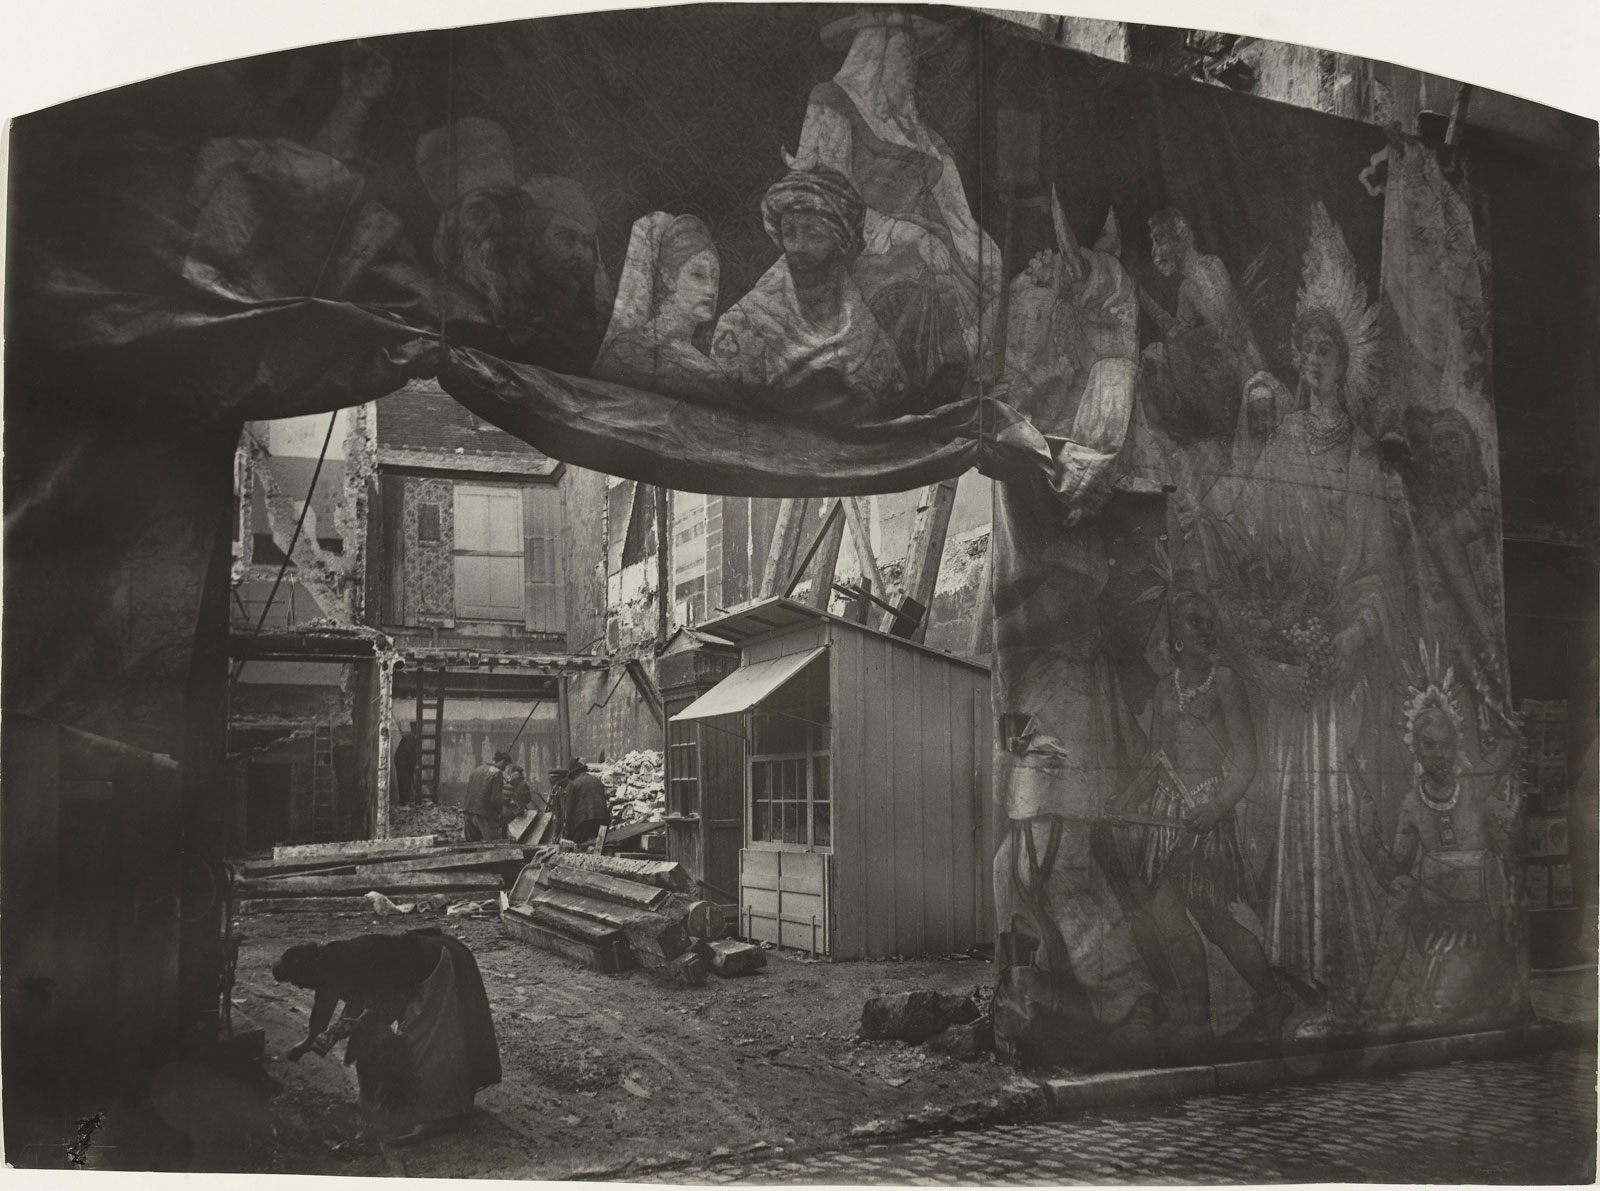 Exhibition f lix thiollier 1842 1914 photographs at the mus e d orsay - Musee design st etienne ...